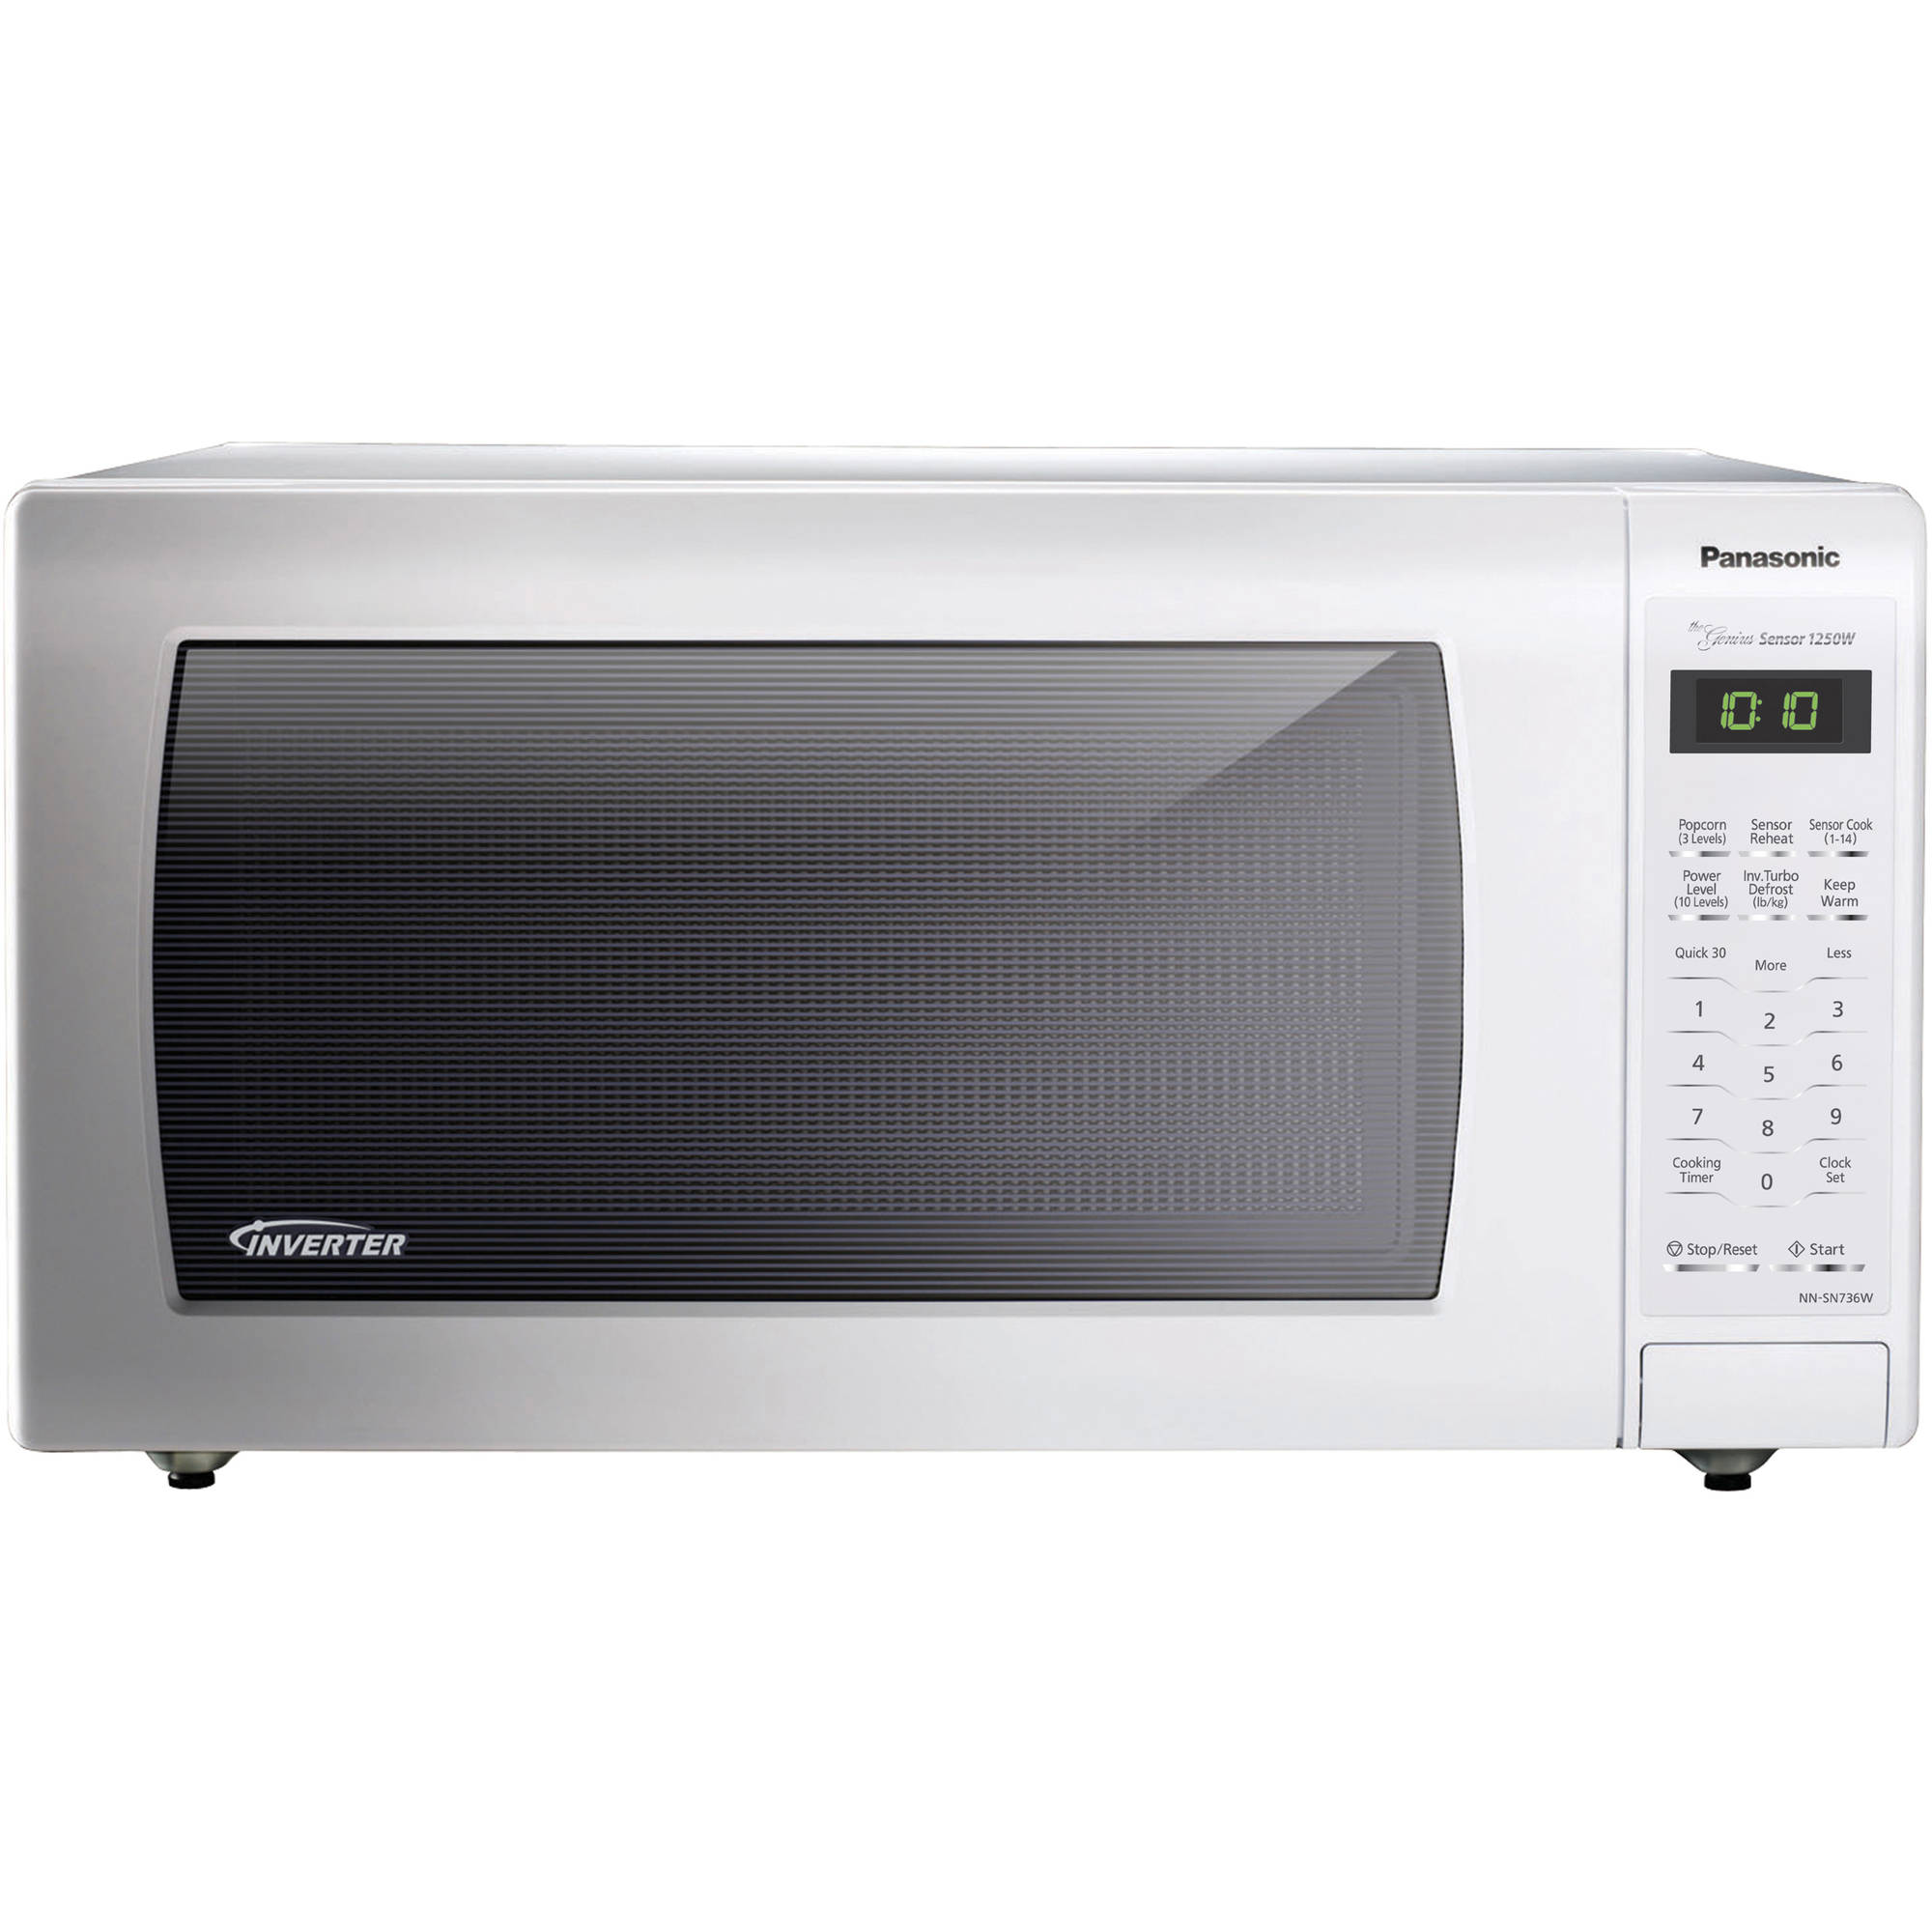 Panasonic 1.6 cu ft Microwave Oven, White